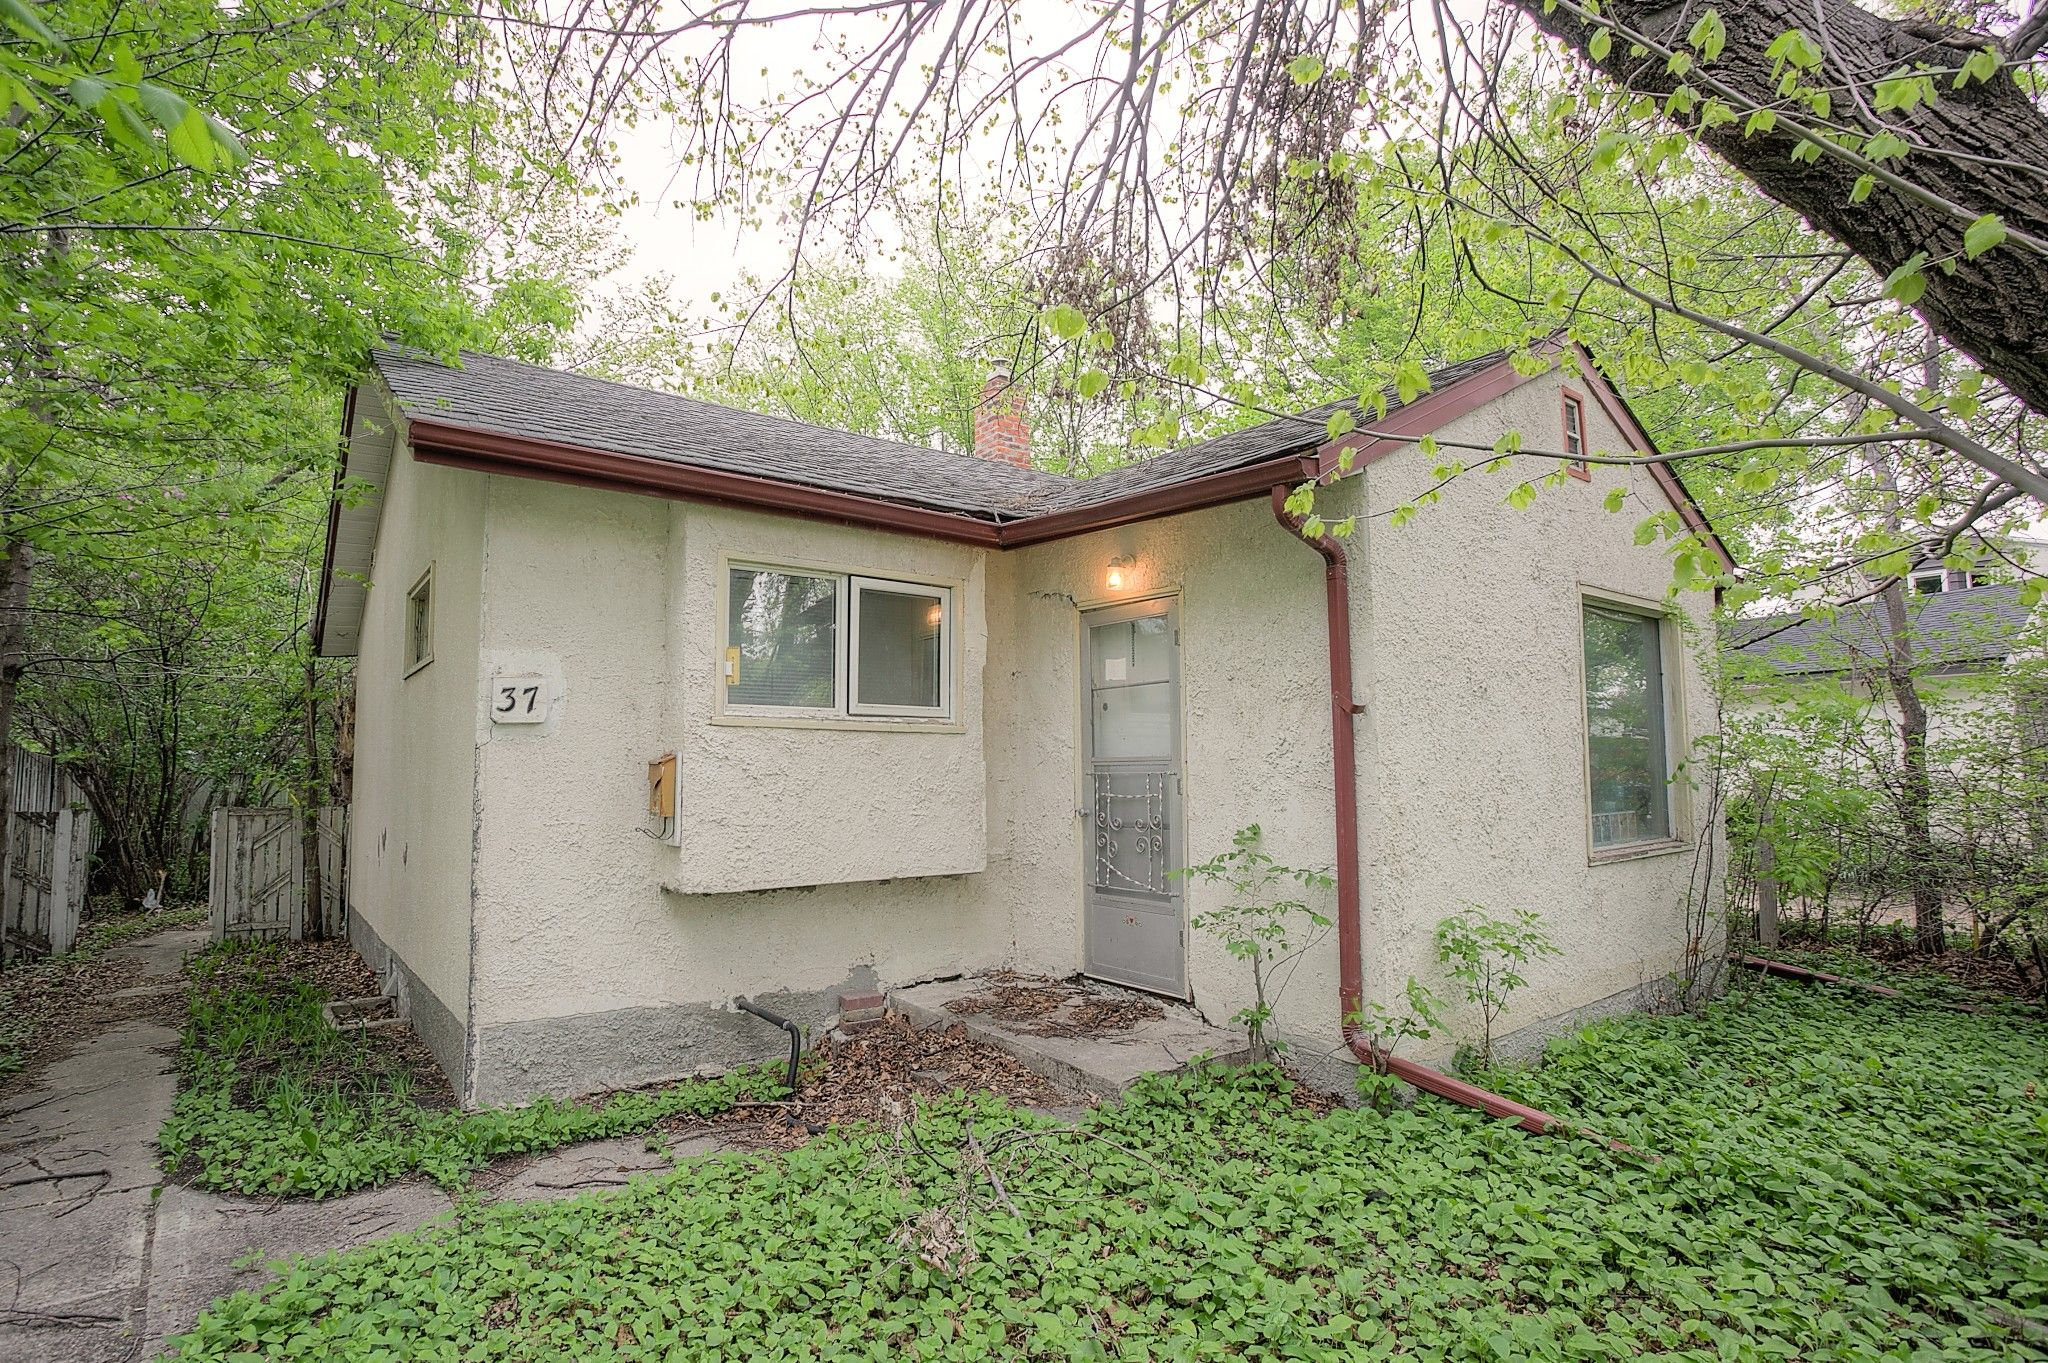 Main Photo: 37 St George Road in Winnipeg: Single Family Detached for sale (2D)  : MLS®# 202112791